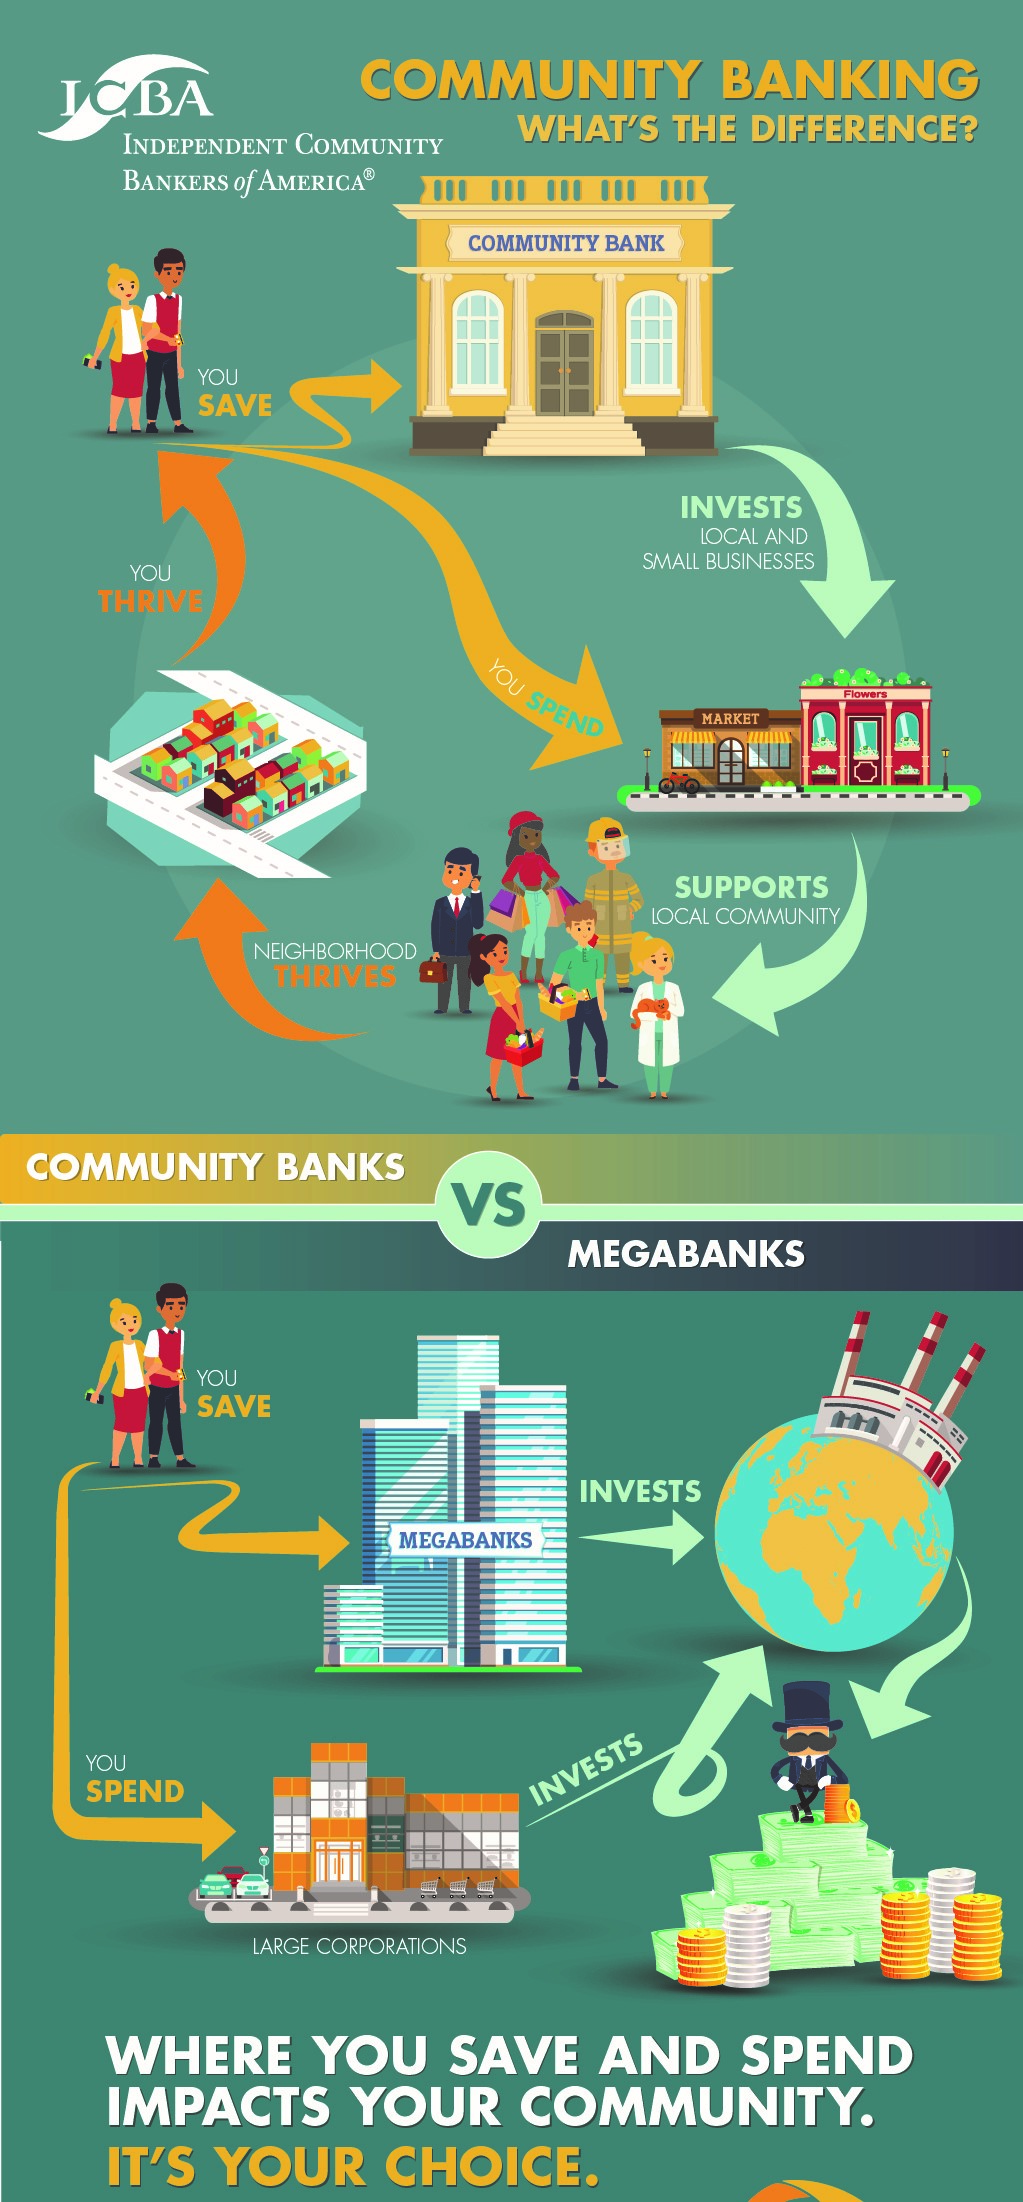 Community Banking Difference Infographic